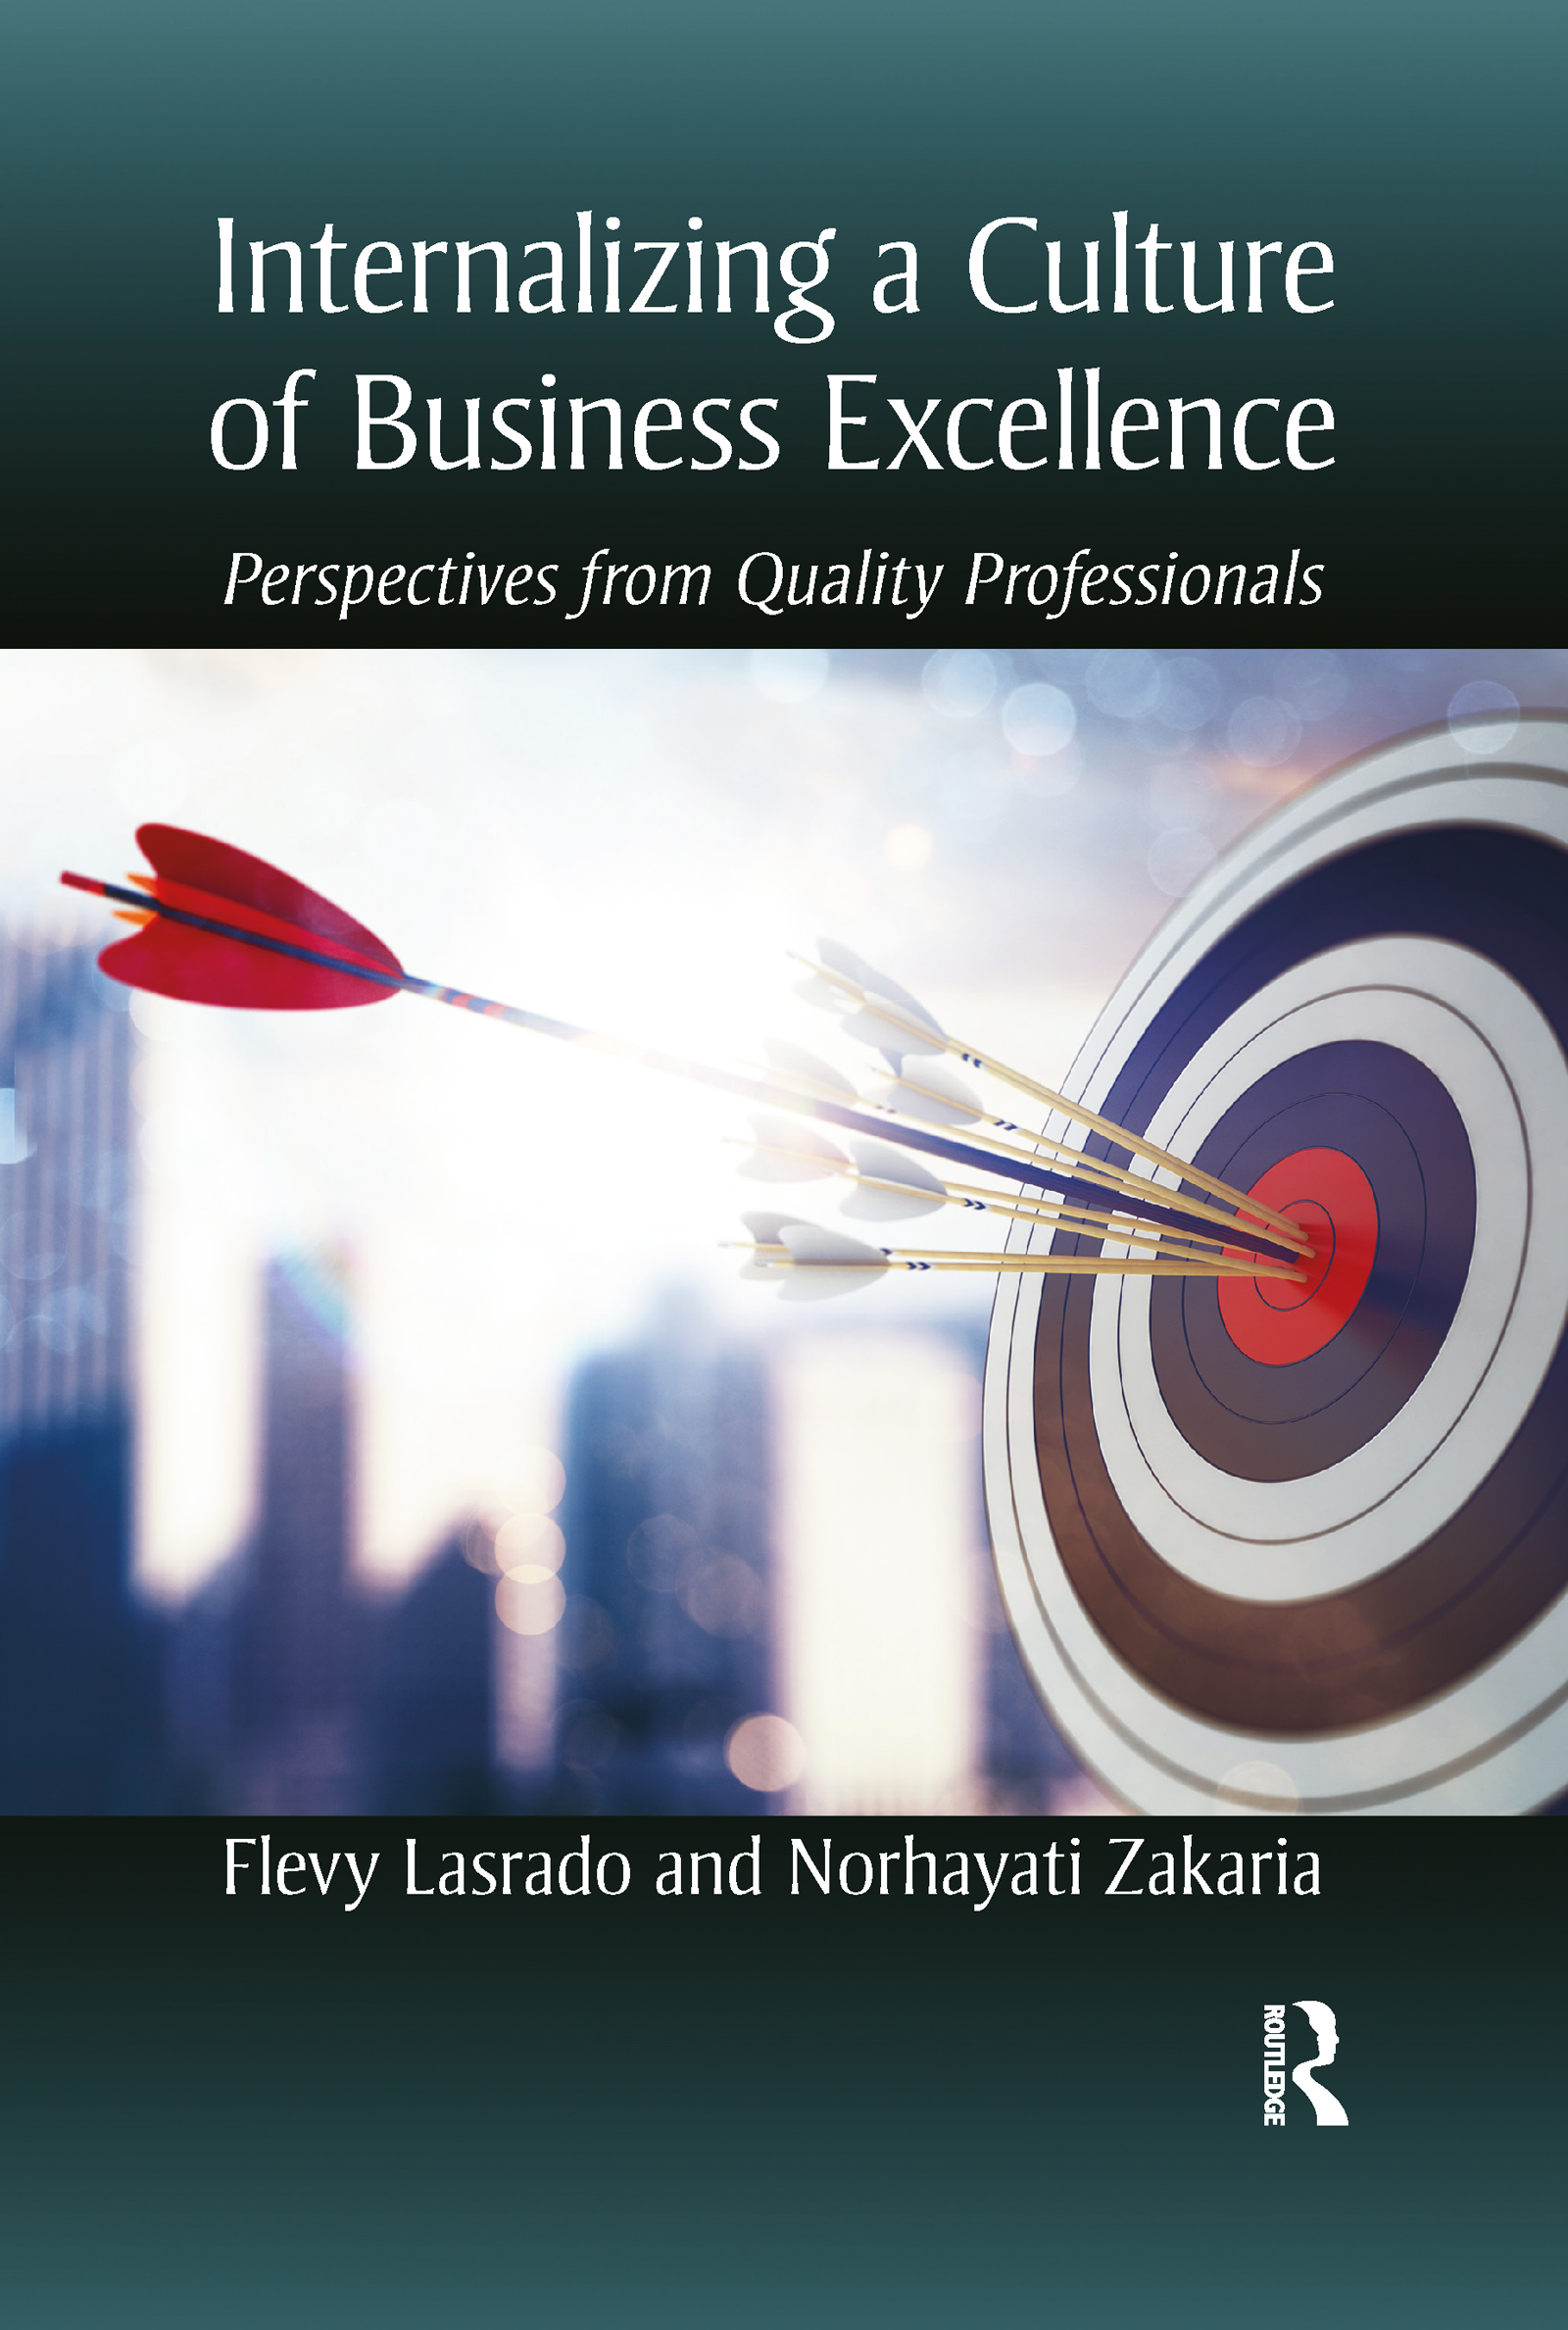 Internalizing a Culture of Business Excellence